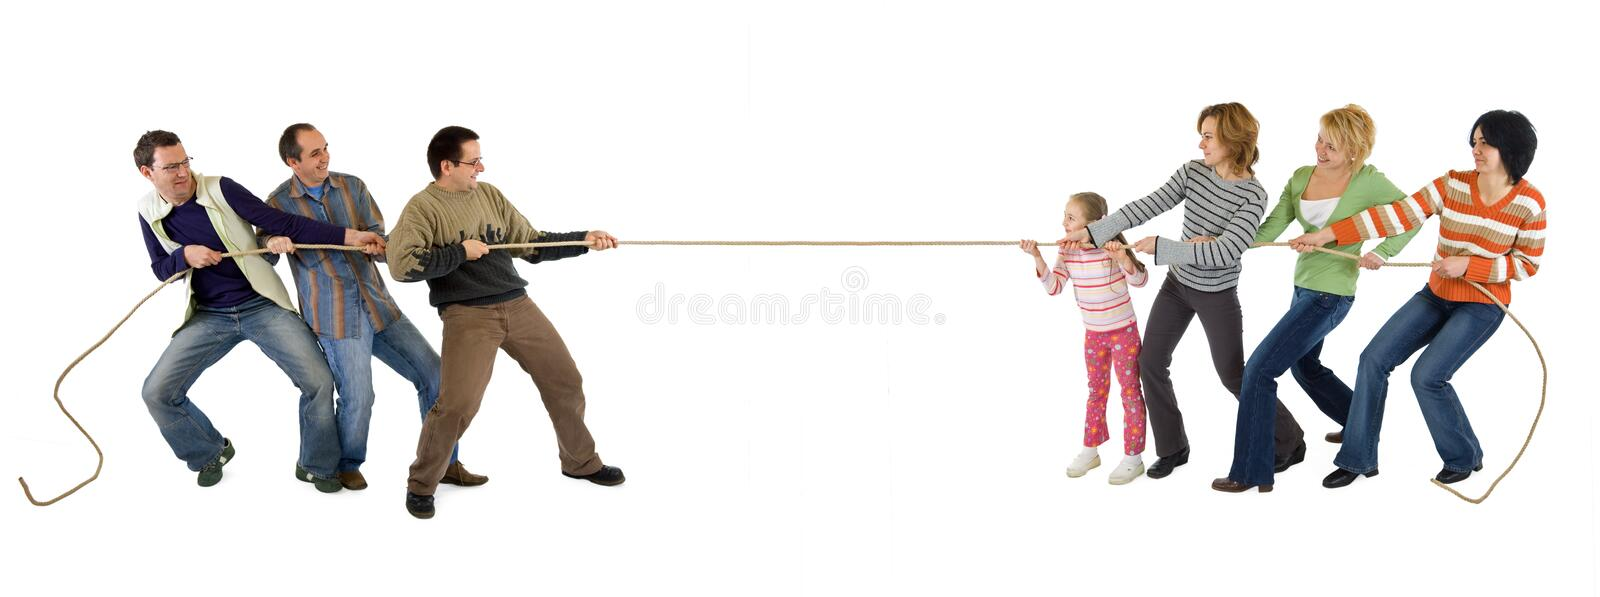 Casual people playing tug of war. Man and woman playing tug of war - isolated stock images